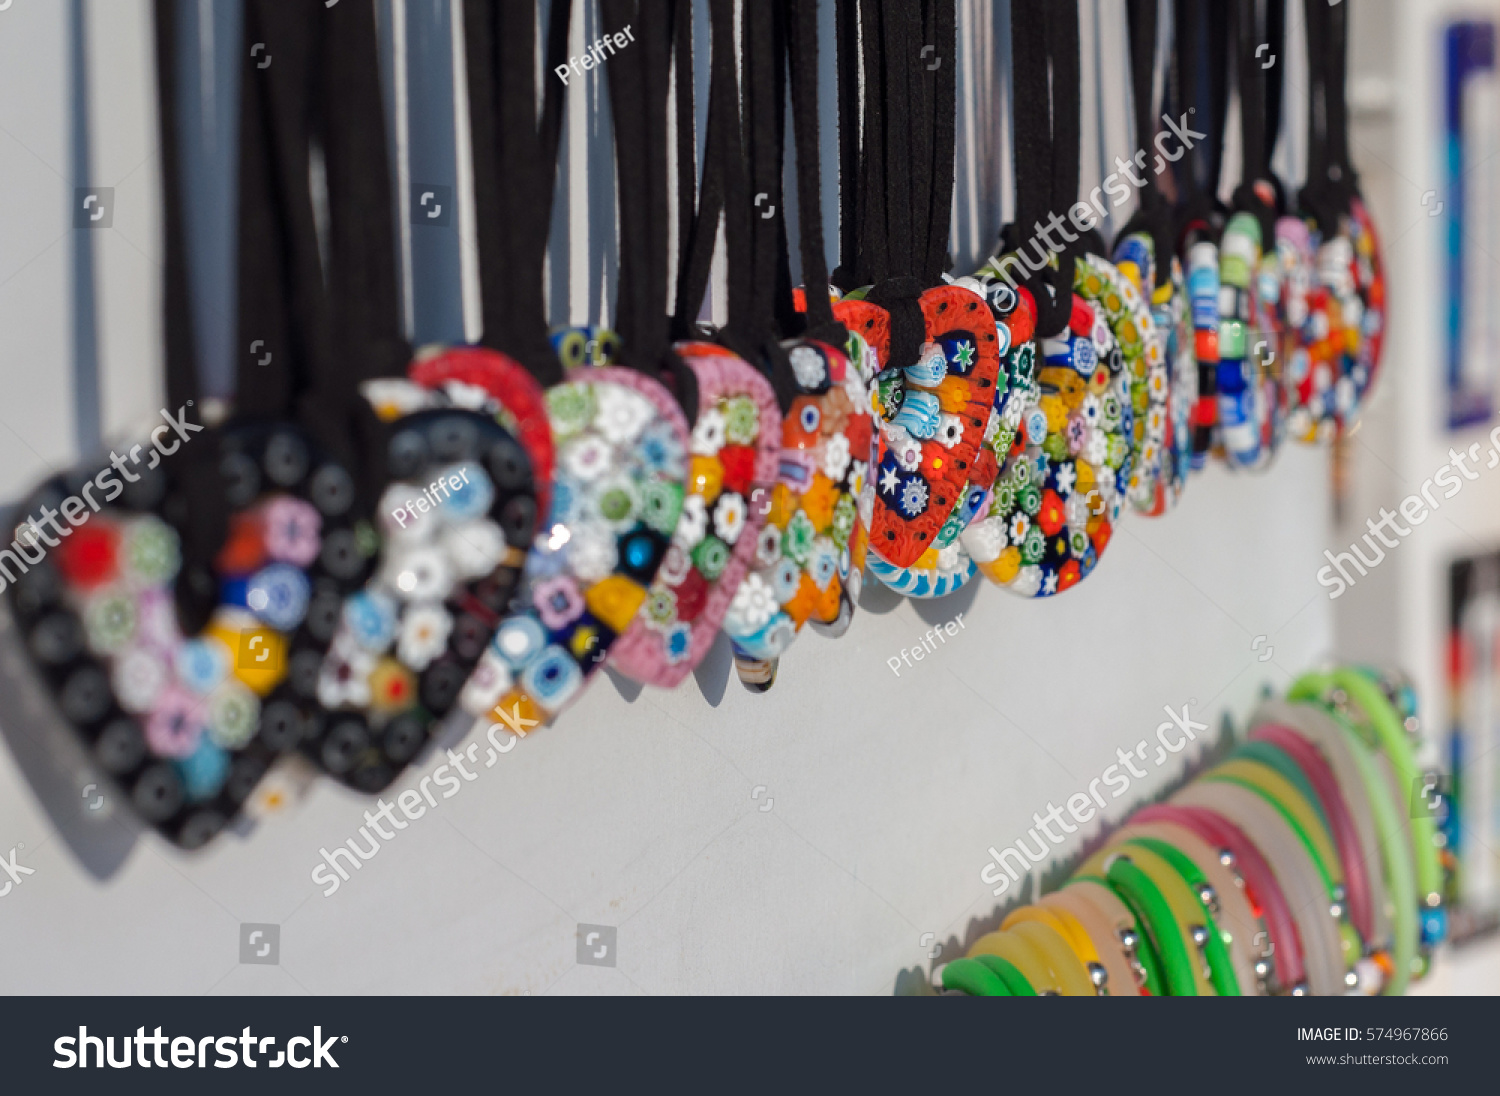 Herat shaped glass pendants sale souvenirs stock photo image herat shaped glass pendants in sale as souvenirs for tourist in murano island venice aloadofball Gallery